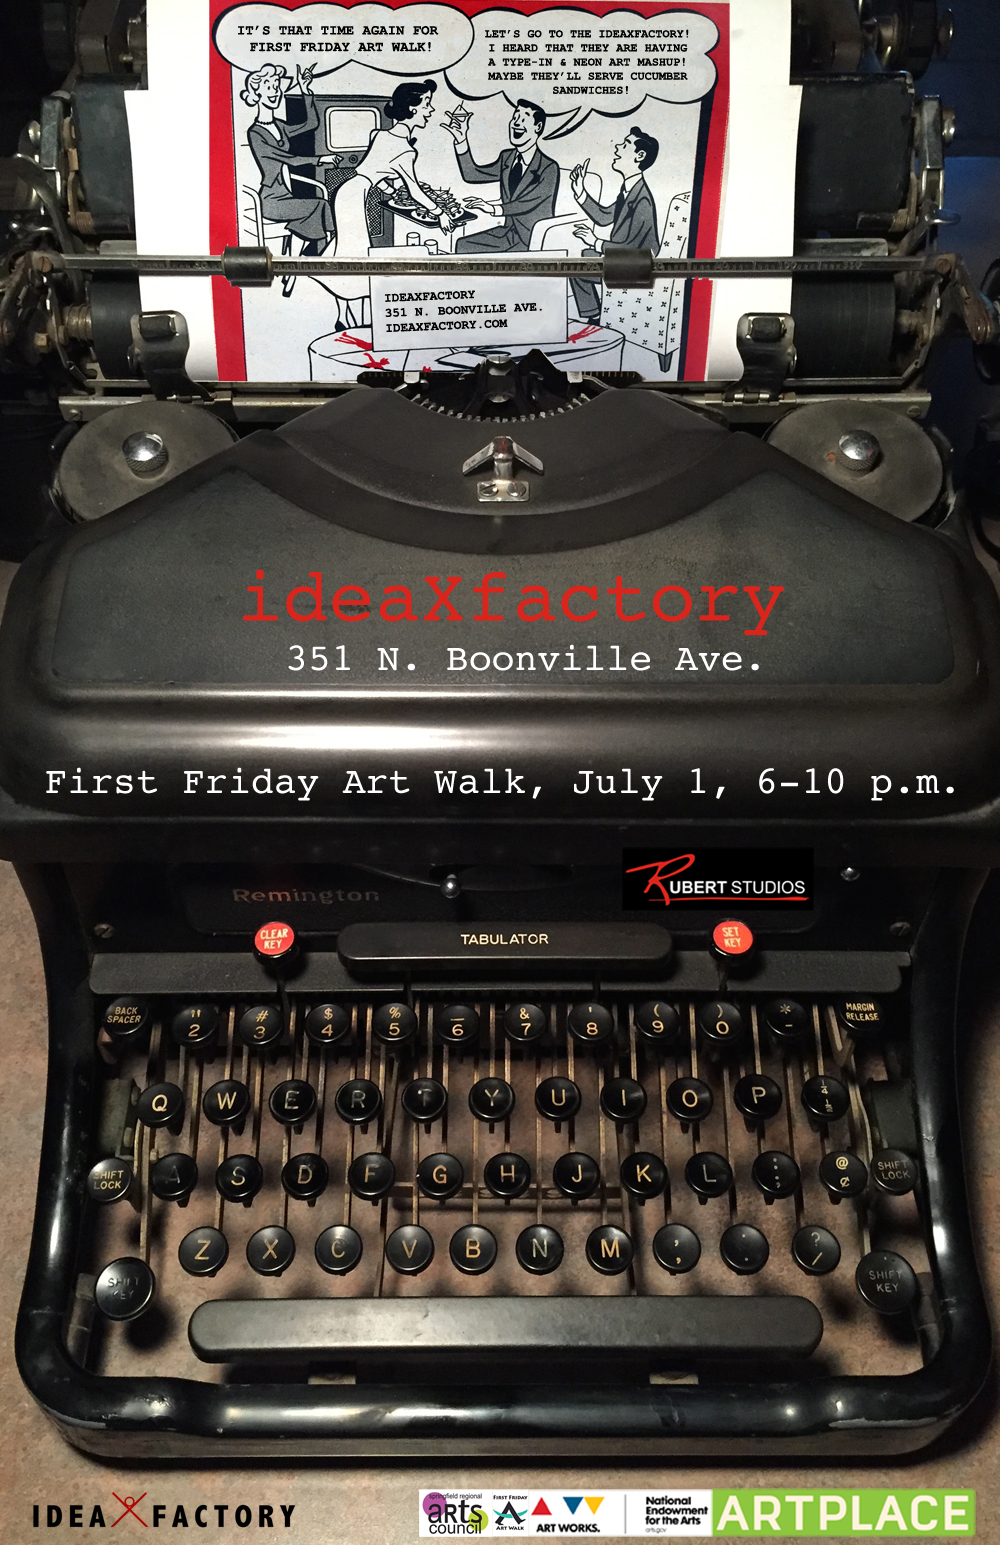 First Friday at ideaXfactory on July 1